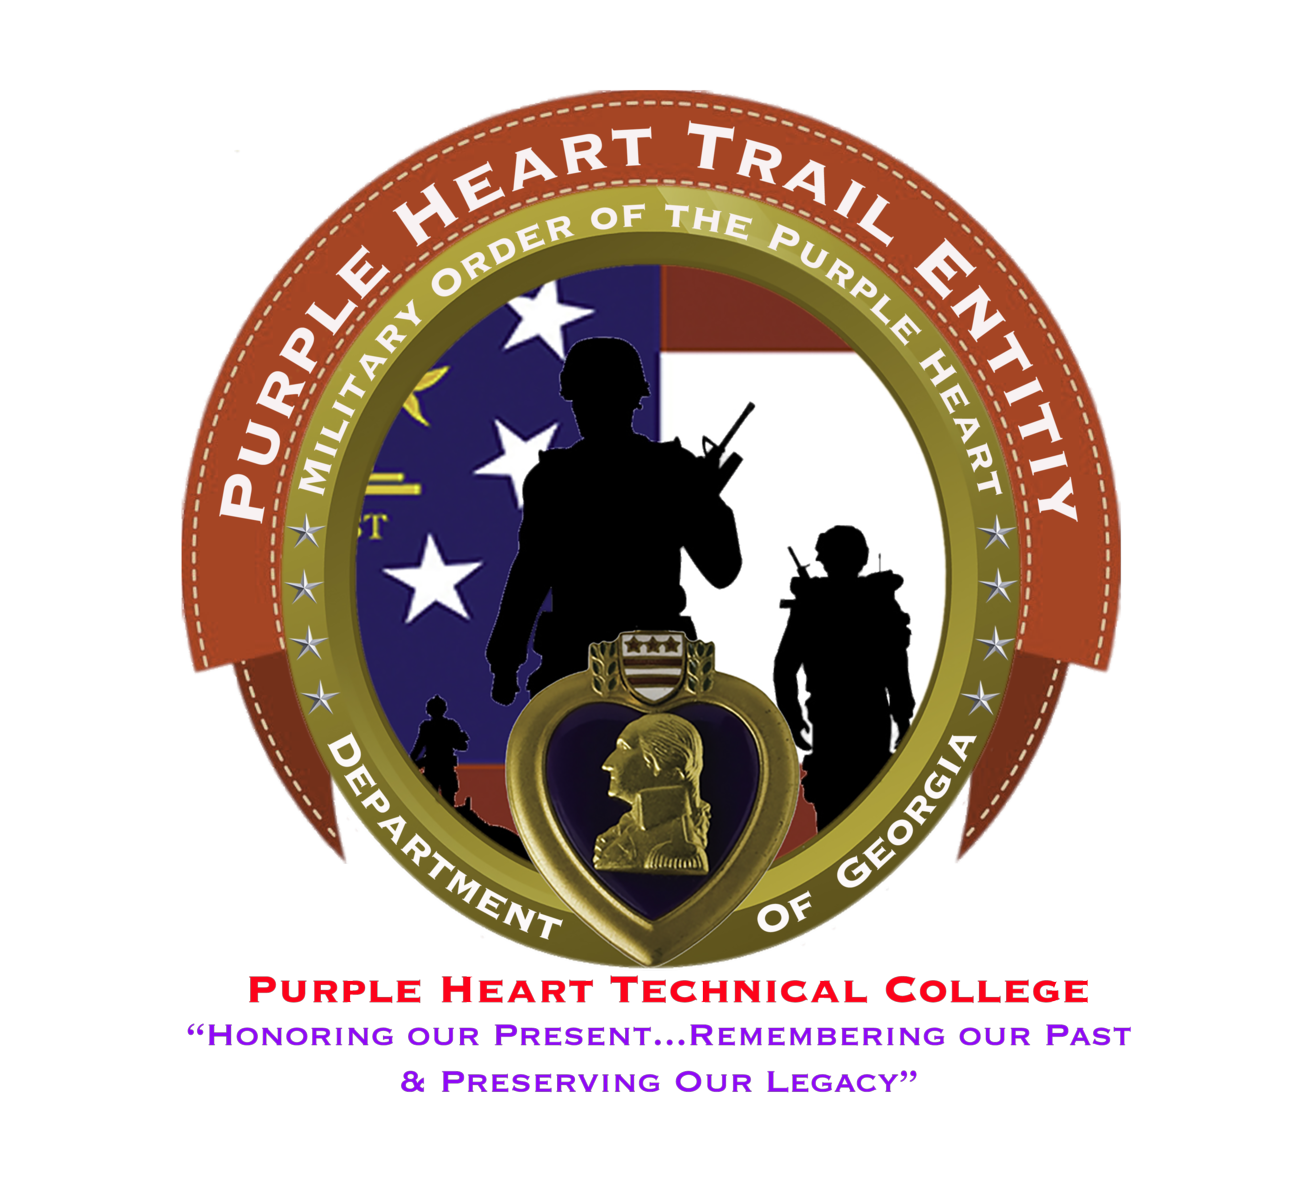 A red banner with a white stitch border wraps the upper half of a golden circle with the words 'Purple Heart Trail Entity' in white, all capital letters. The golden circle is a metallic frame with the words 'Military Order of the Purple Heart' on the top half in white, all capital letters and 'Department of Georgia' on the bottom half in white, all capital letters. There are four golden stars separating the text sections; the stars are centered on the left and right of the golden circle. A golden heart-frame is at the bottom center of the golden circle with the heart's point resting between 'Department' and 'of'. The center top of the heart is a white shield with three gold stars side-by-side and two vertically stacked, horizontal lines, two laurel leaves frames the shield on the left and right. A golden bust of George Washington is centered on a black background within the golden heart. An image of the Flag of Georgia showing the blue square with three white stars on the left and two red stripes separated by a white stripe on the right contrasts with the silhouettes of three soldiers: the larges is the front center, the second largest is the right, and the smallest is on the left. 'Purple Heart Technical College' is centered below the emblem with the subheading 'Honoring our Present…remembering our past & Preserving our Legacy' in lavender purple, all capital letters on a white background.